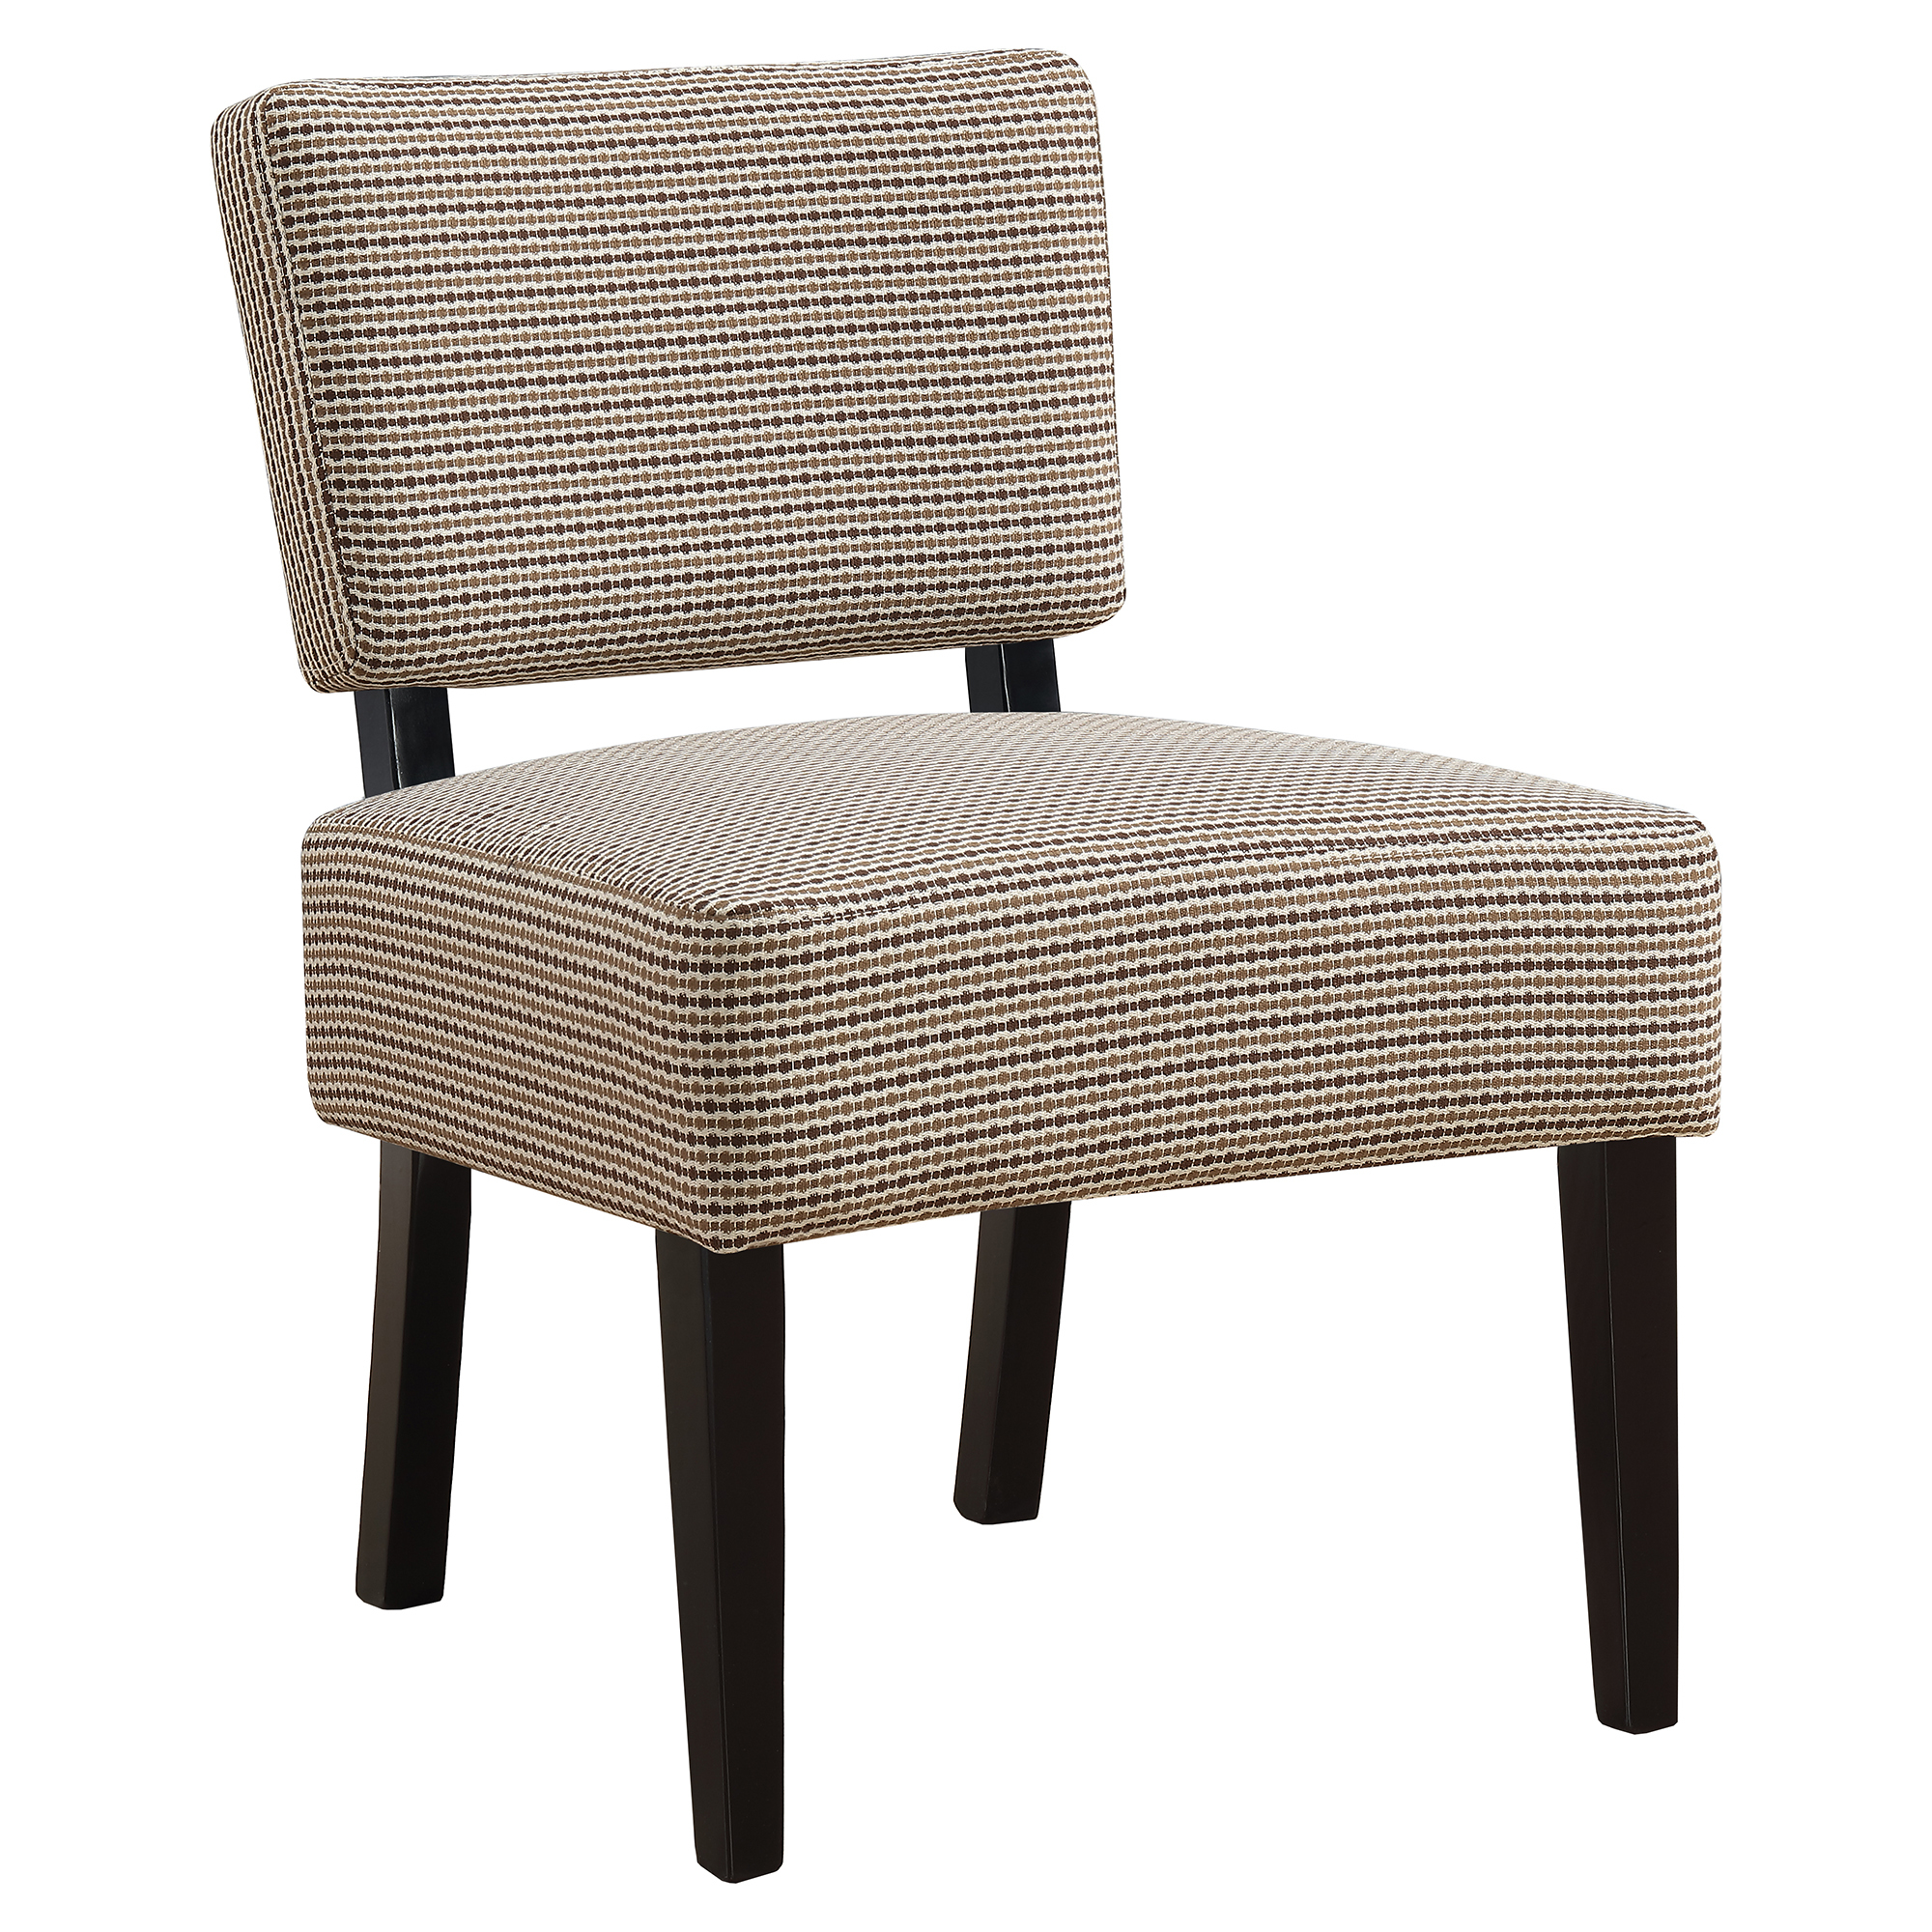 ACCENT CHAIR - LIGHT / DARK BROWN ABSTRACT DOT FABRIC